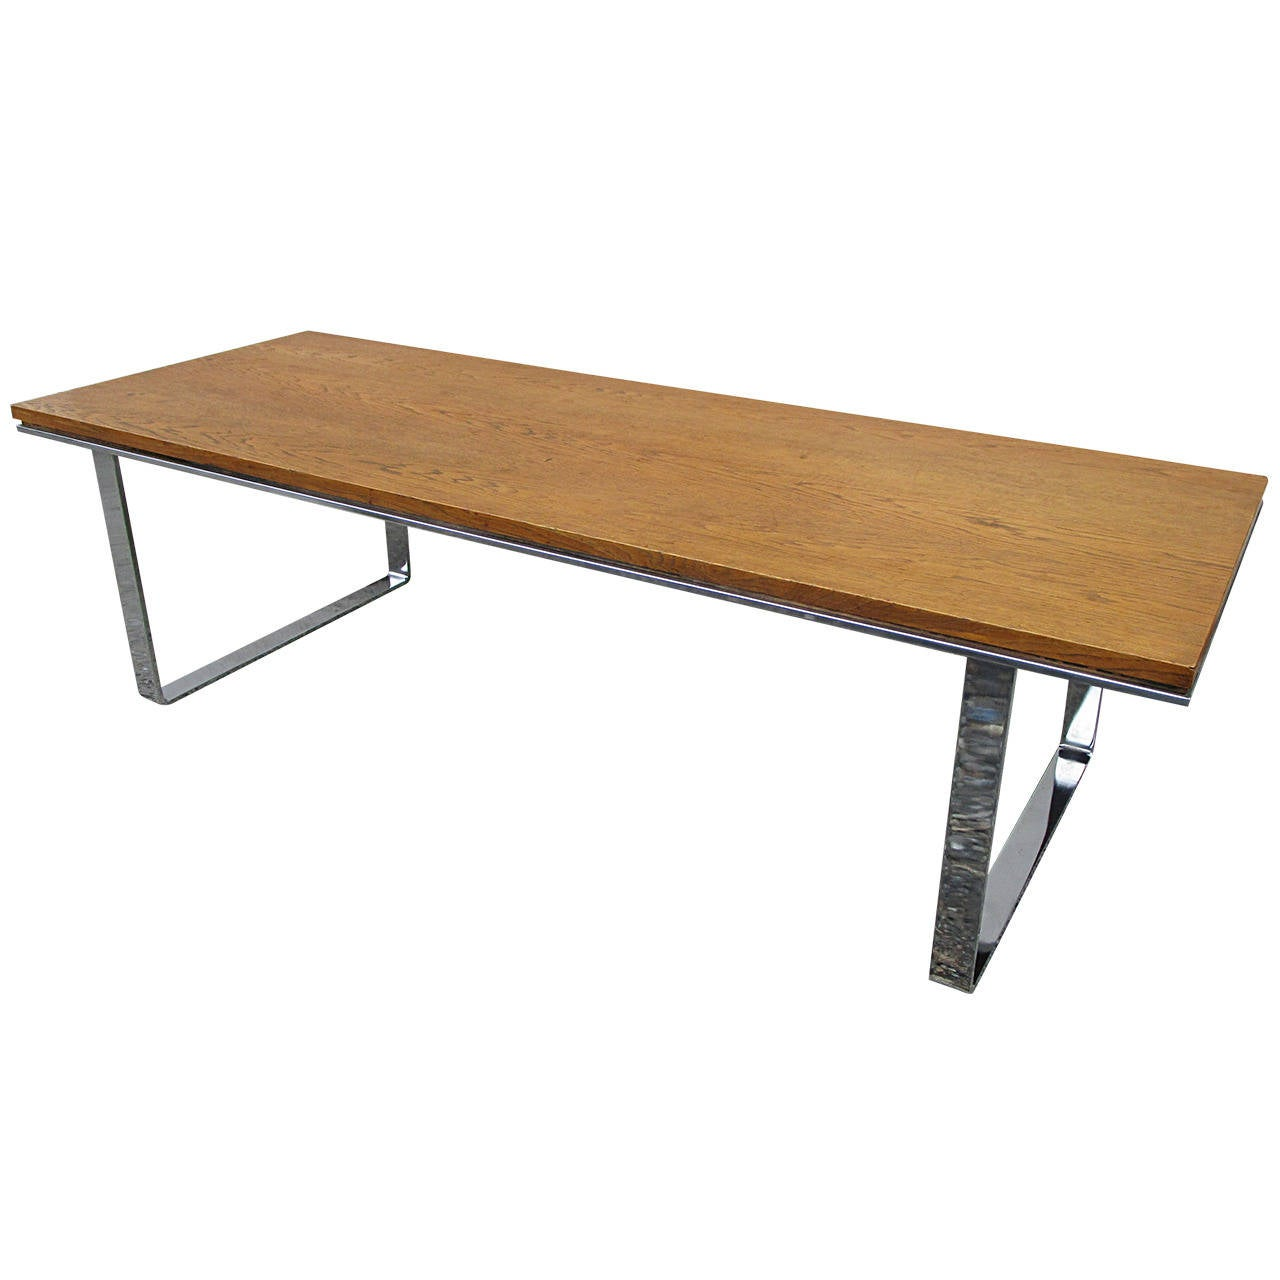 Flat Bar Chrome And Oak Coffee Table At 1stdibs